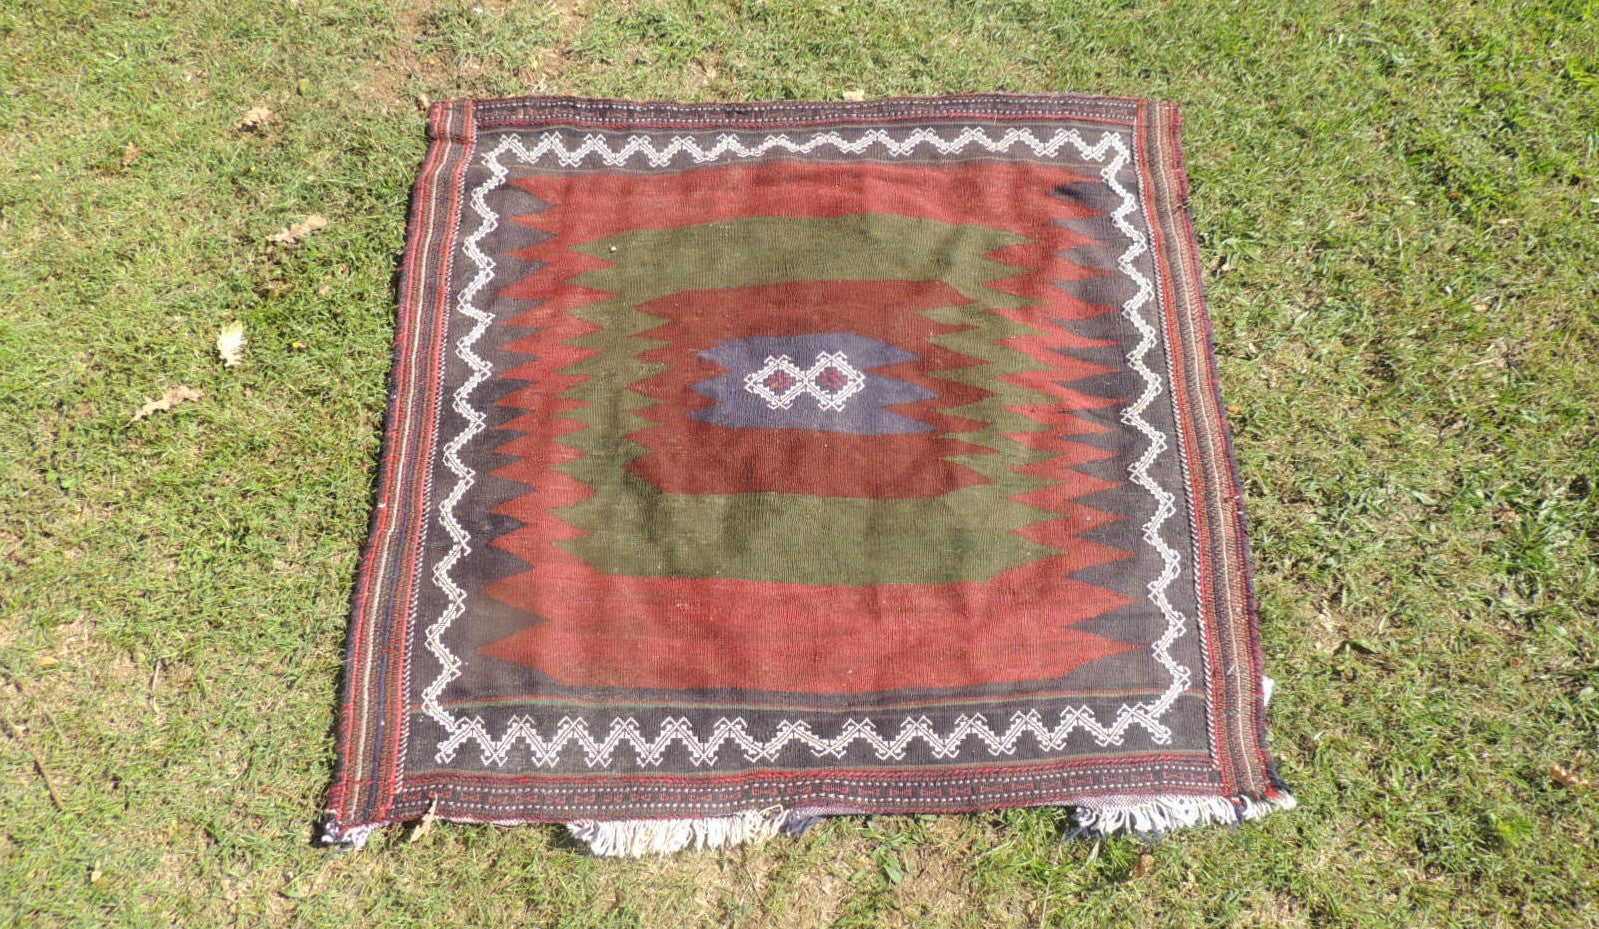 4x4 ft. Square Turkish Kilim Rug Made by Turkish Nomads $139